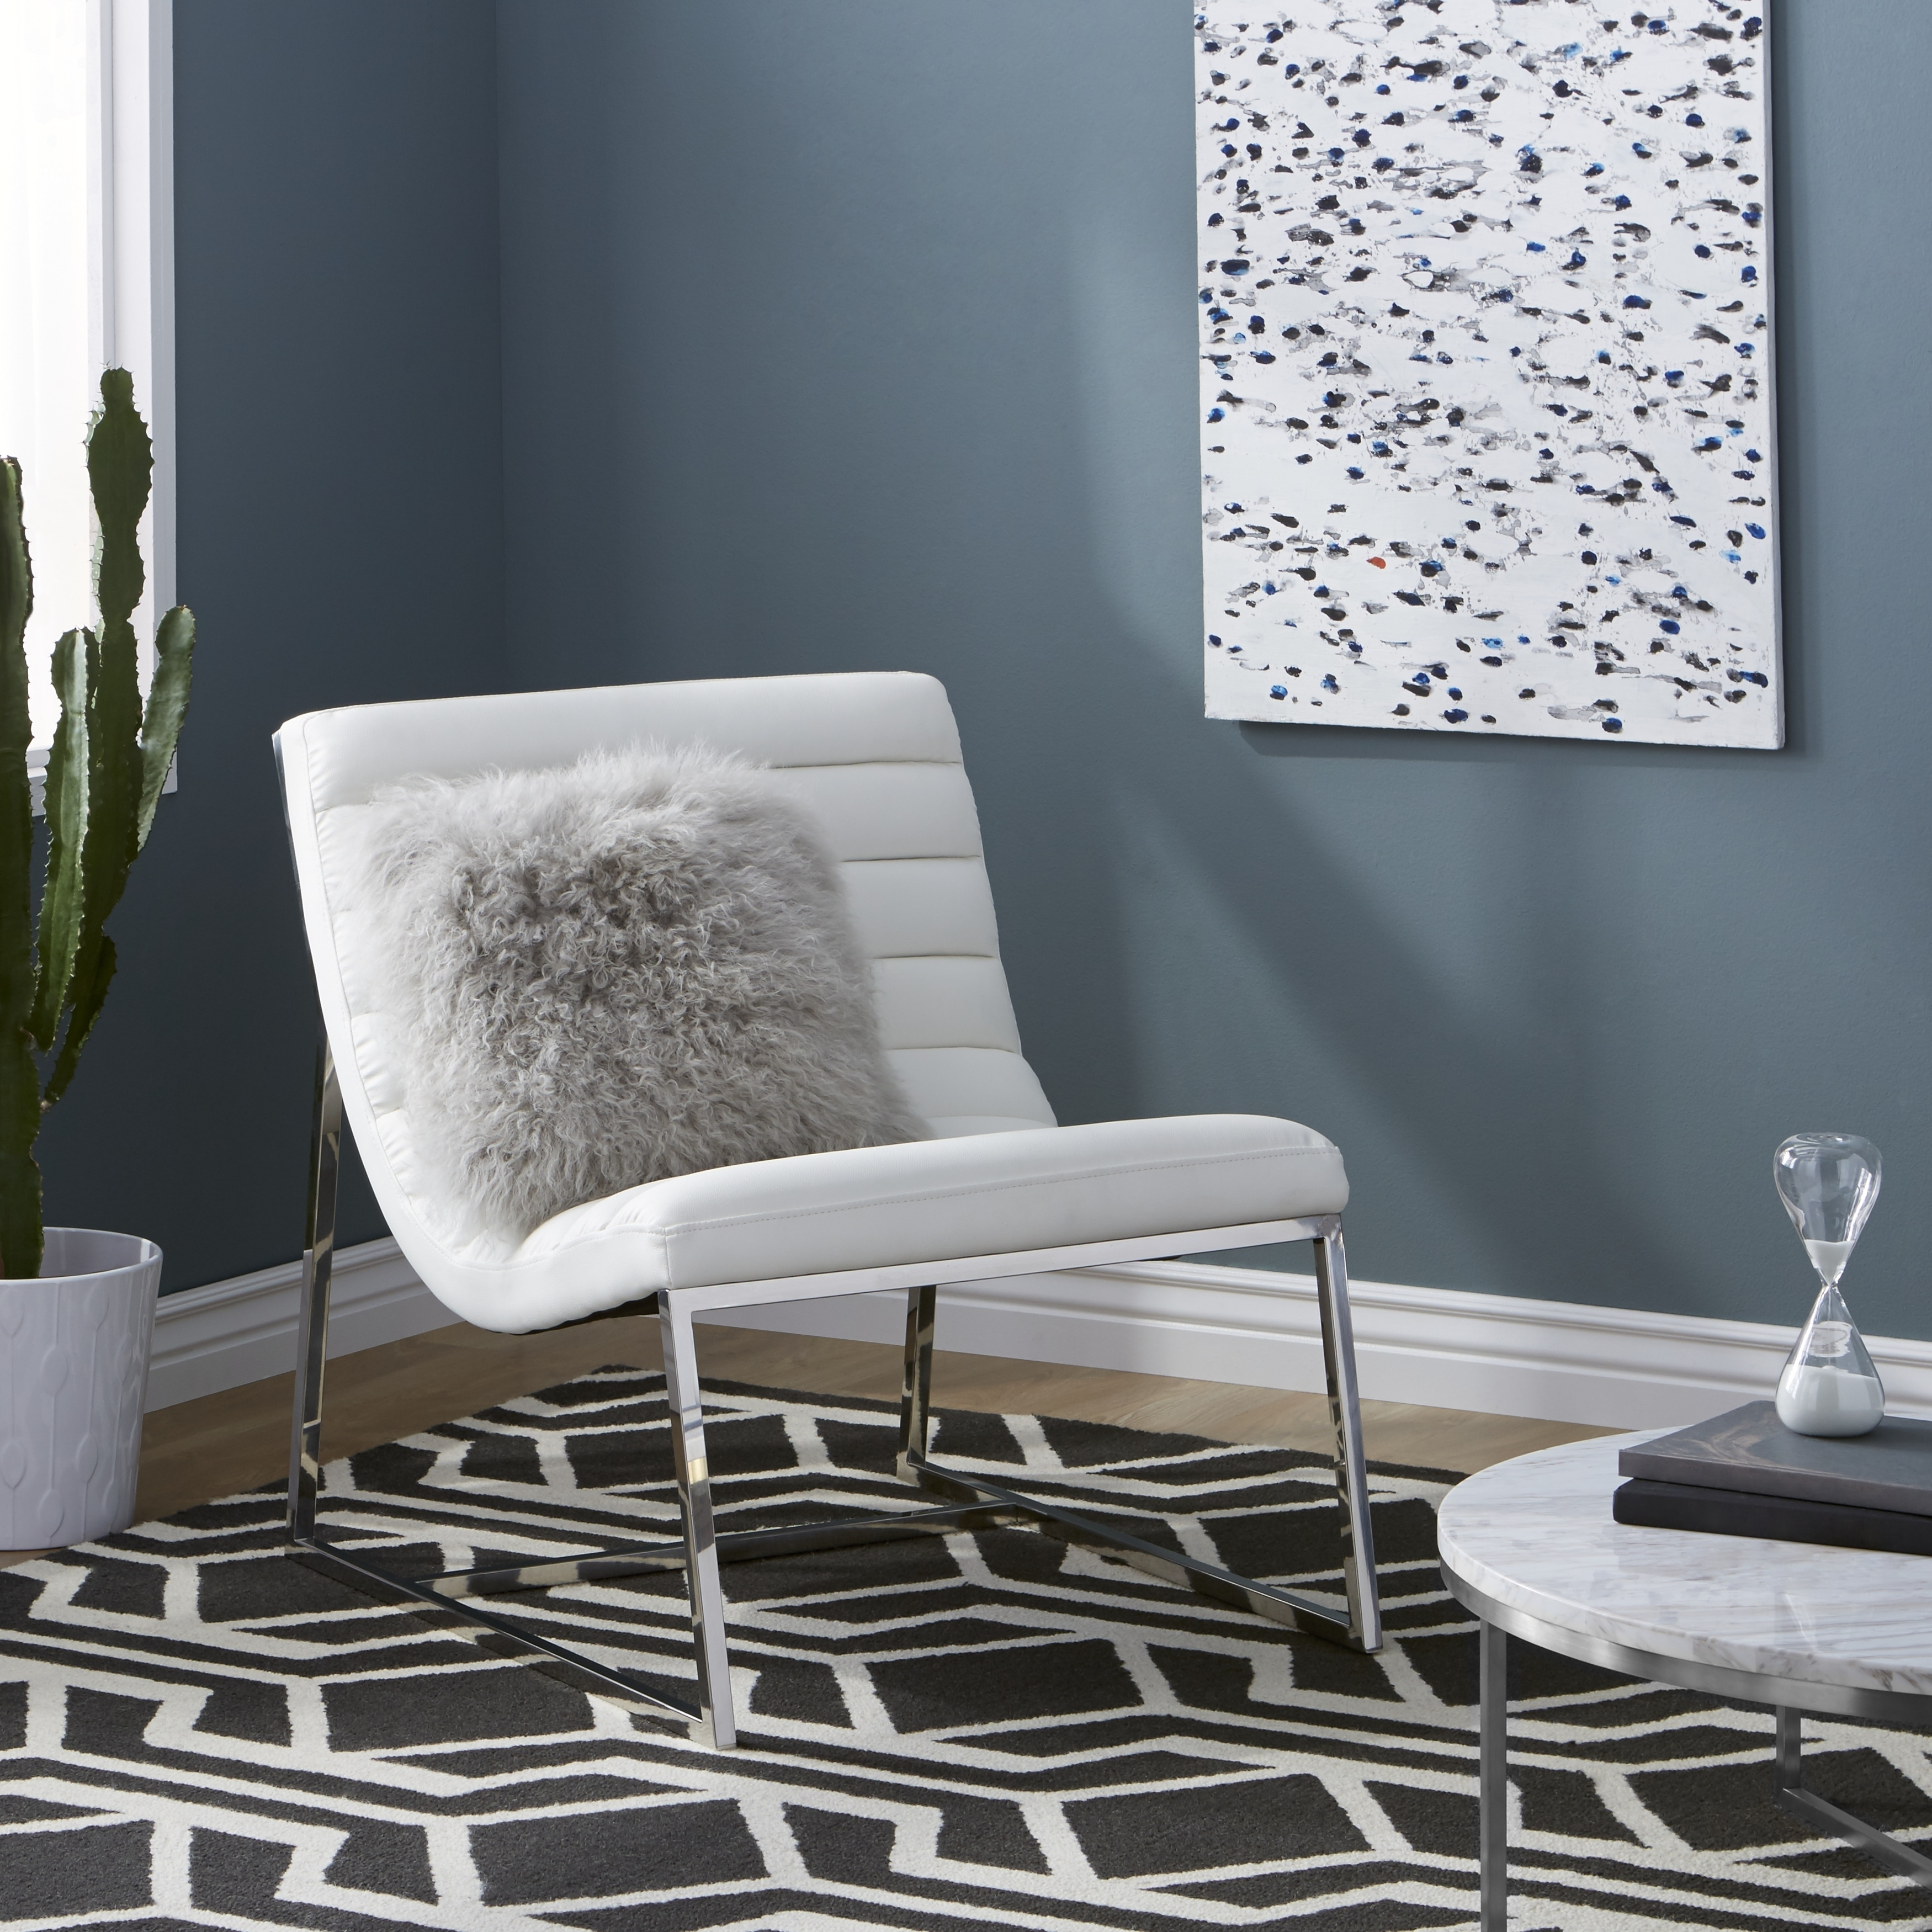 Details About Accent Chairs For Living Room White Leather Fancy Modern Armless Comfy Sturdy